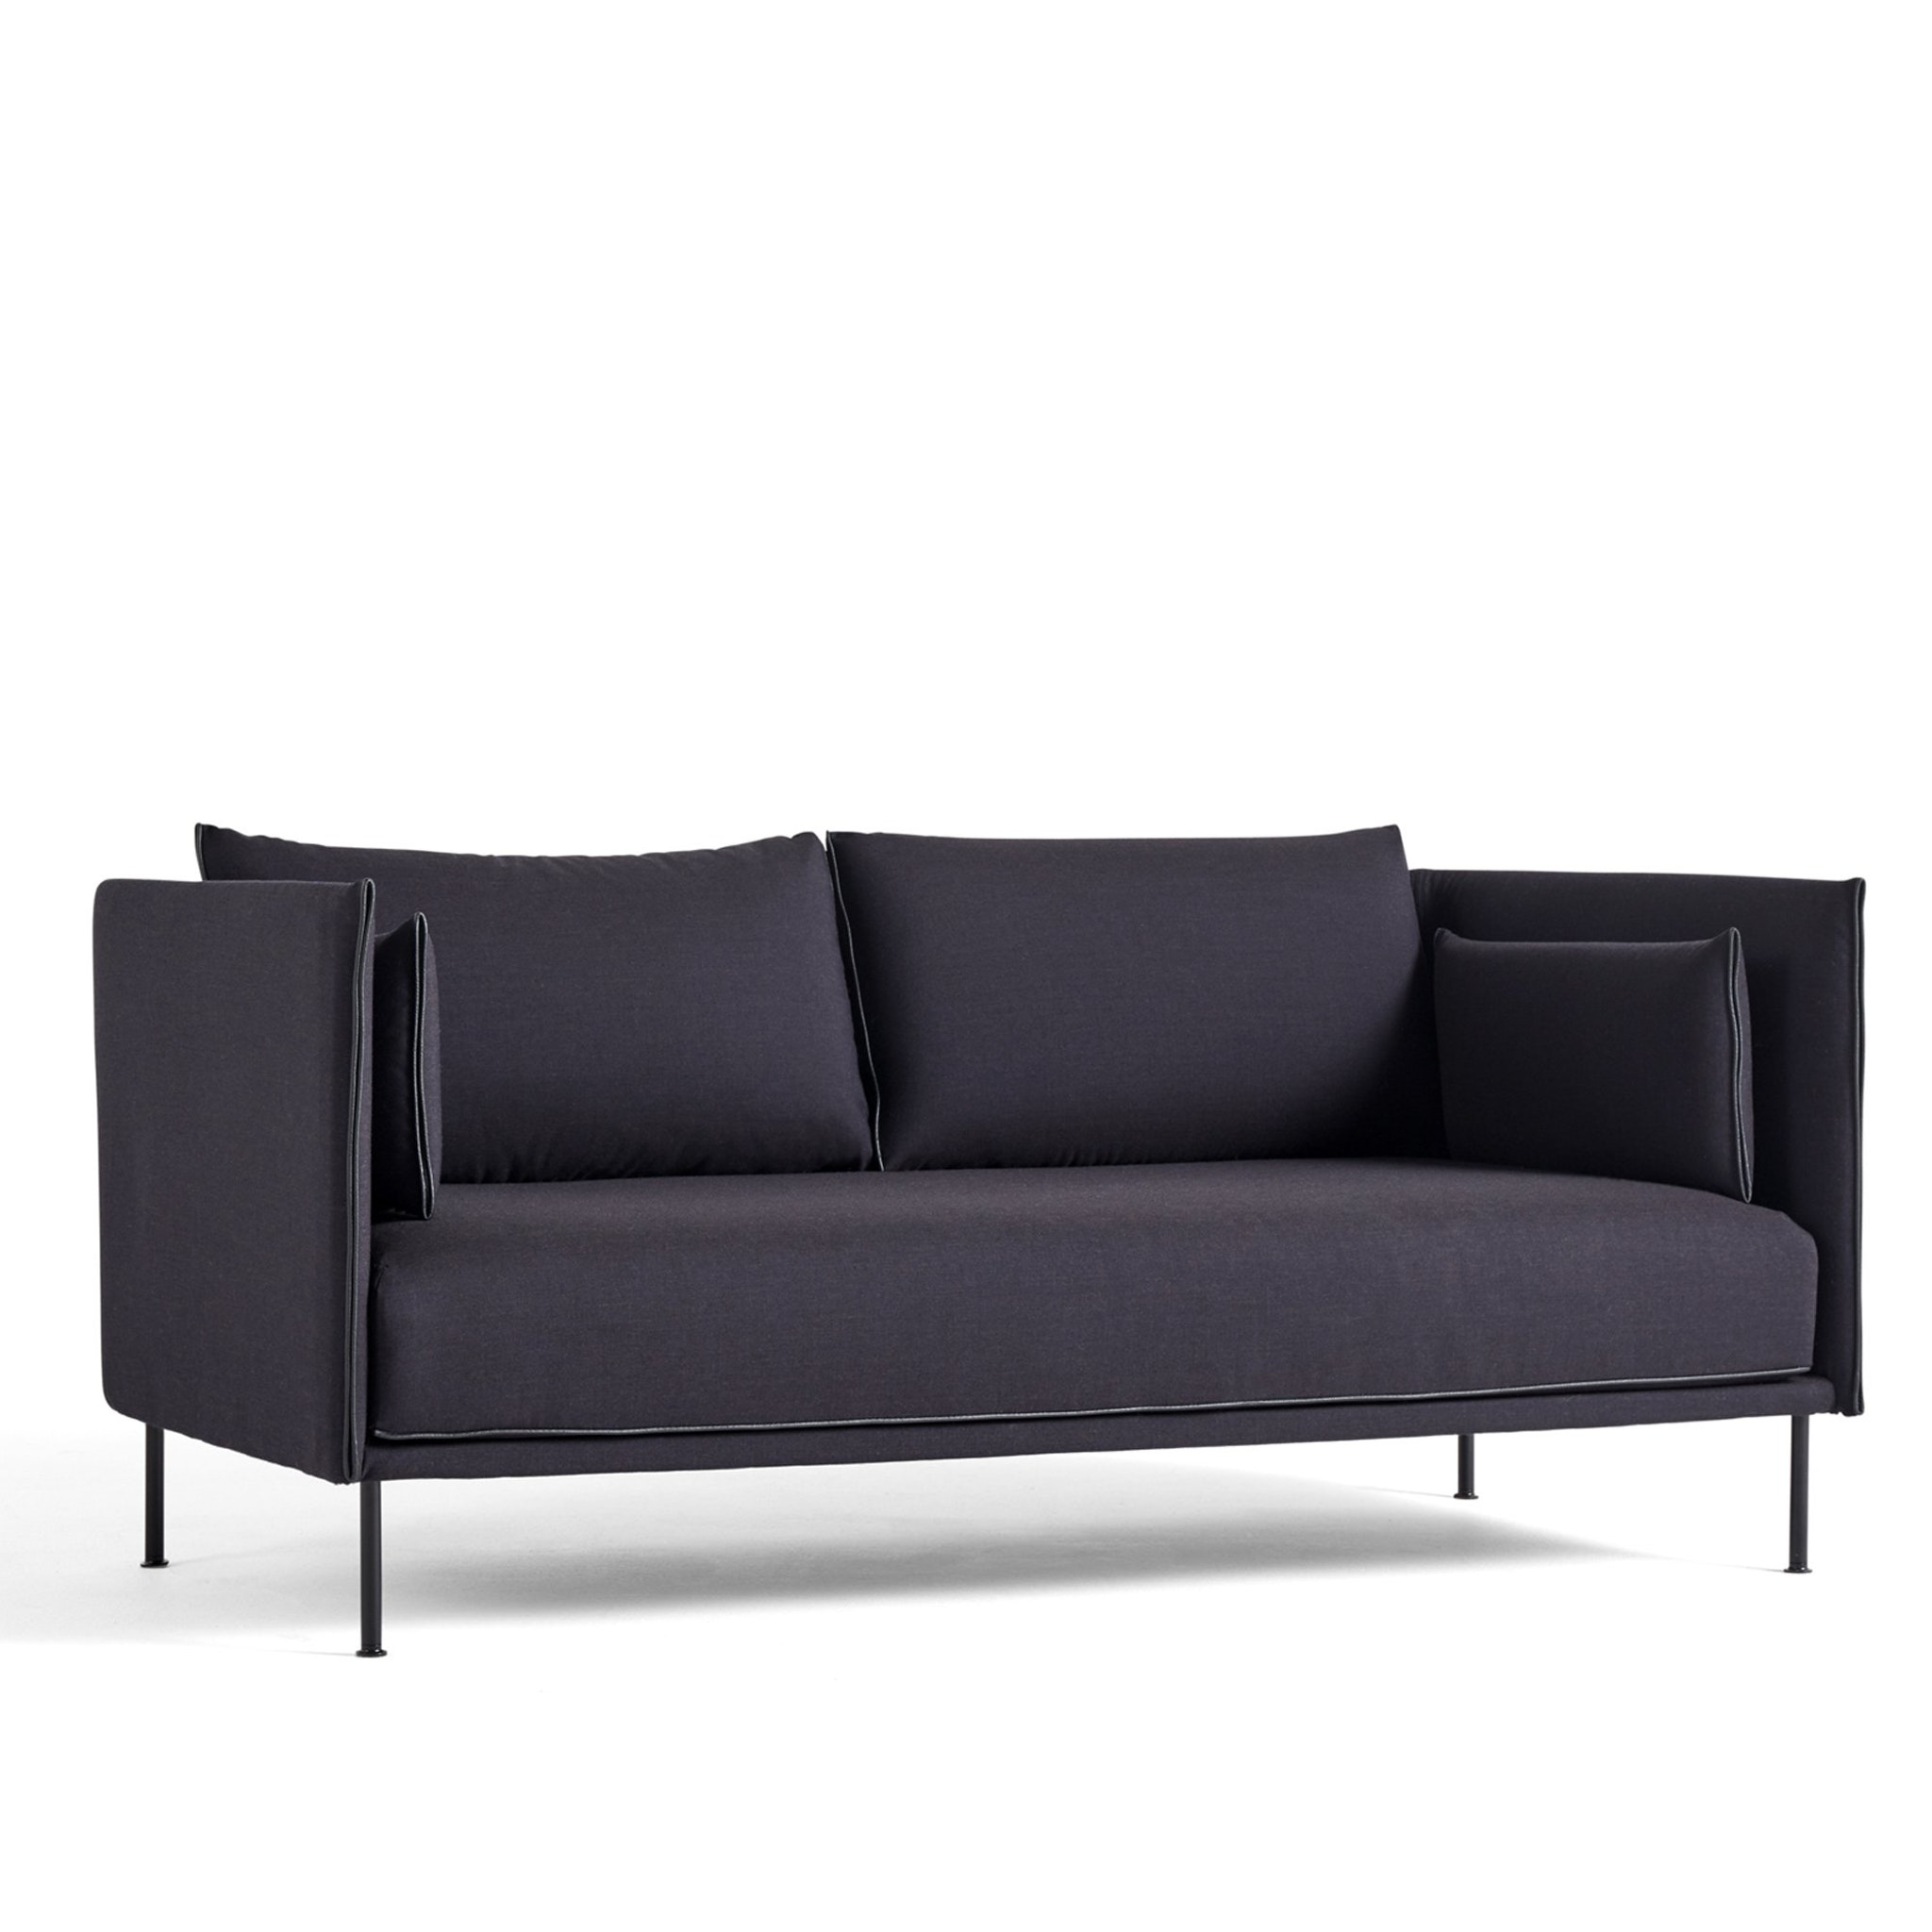 Silhouette Sofa 3 Seater By Hay Haus